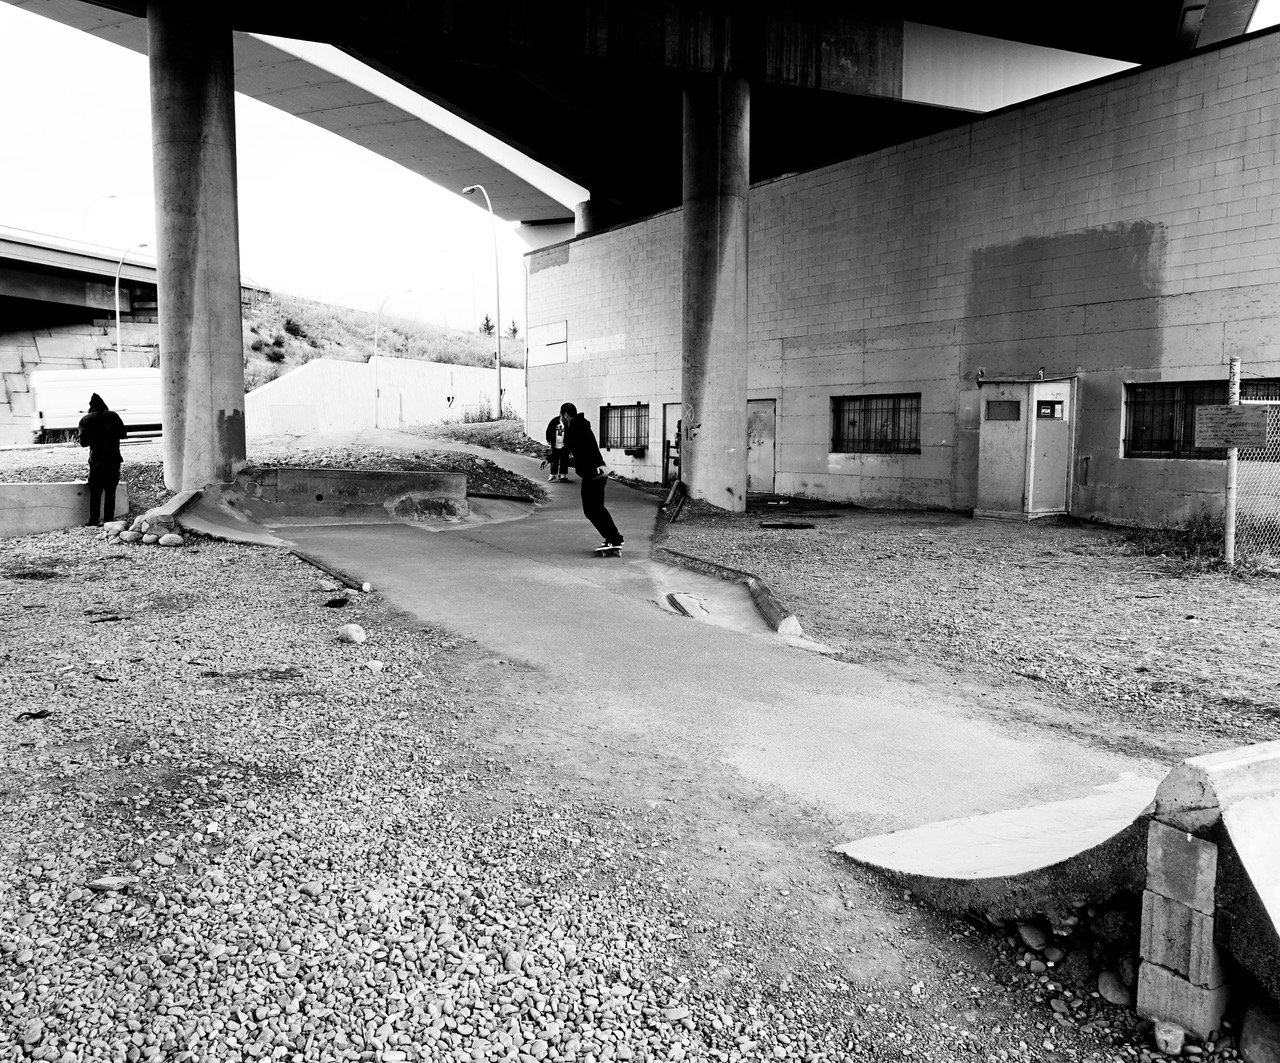 Everyone is invited to enjoy THE BRIDGE skate park. I was even asked if I wanted to give it a try. I declined.